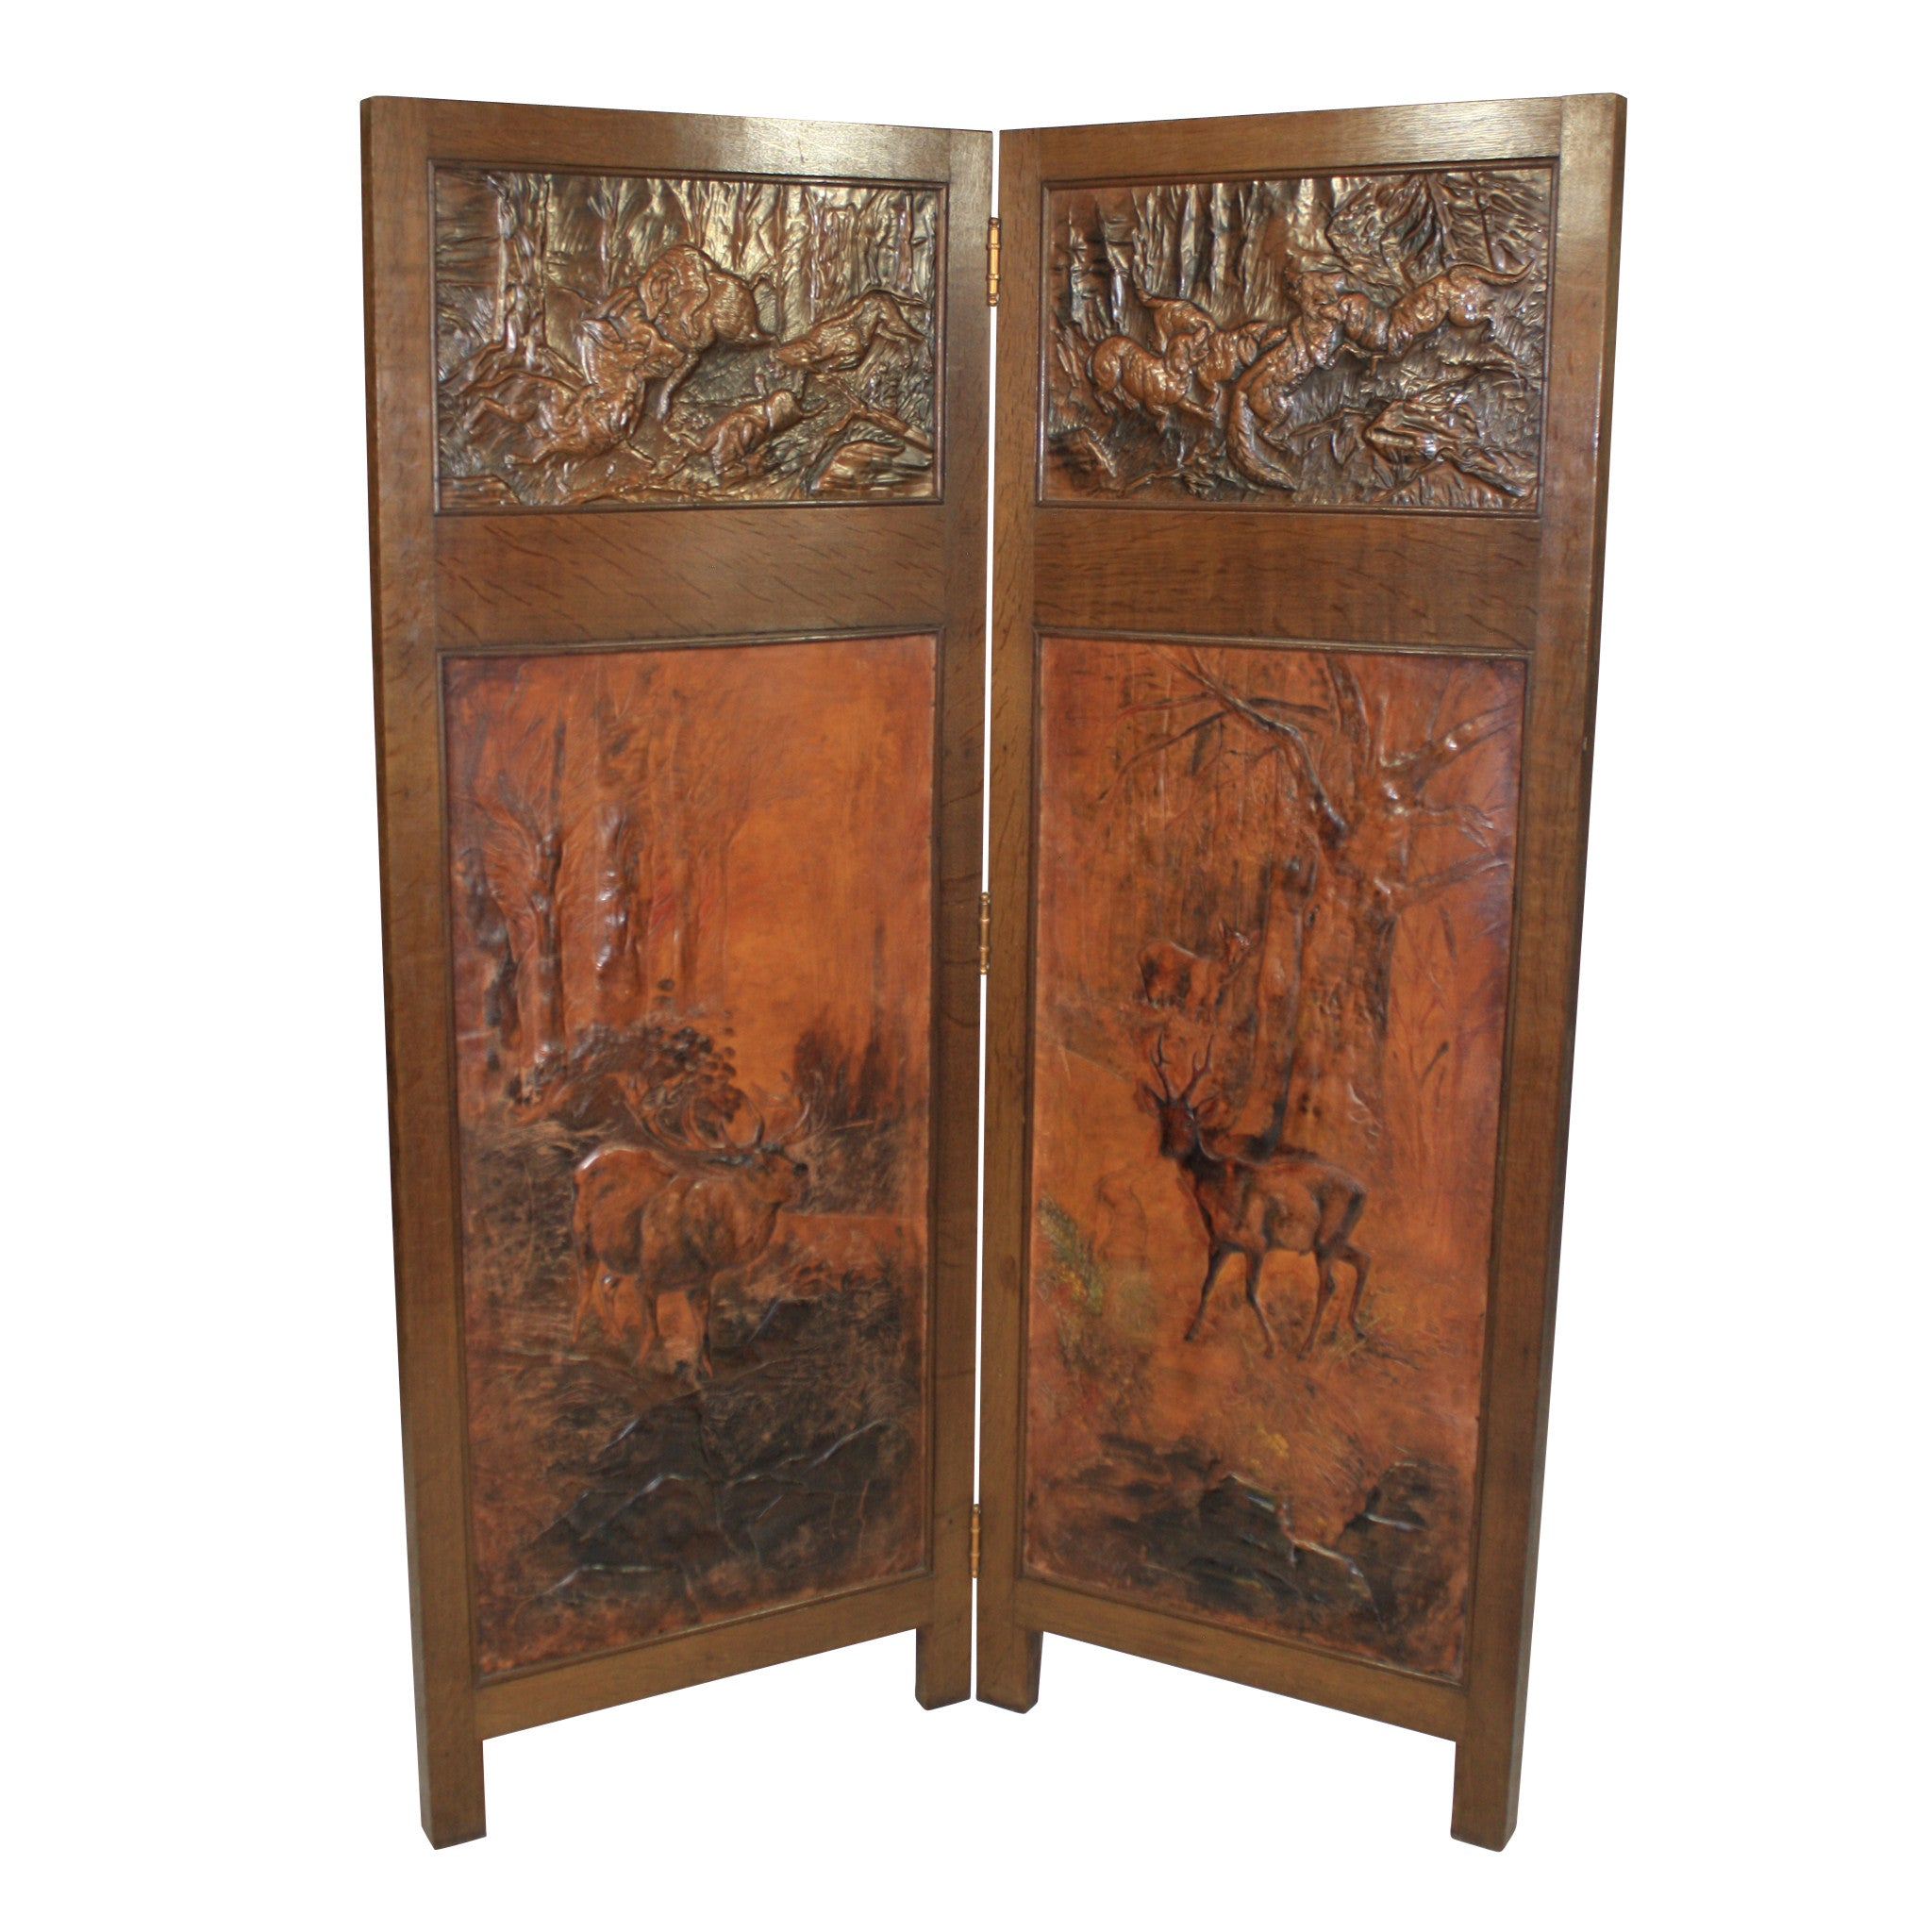 ski-country-antiques - Pressed Leather and Copper Screen